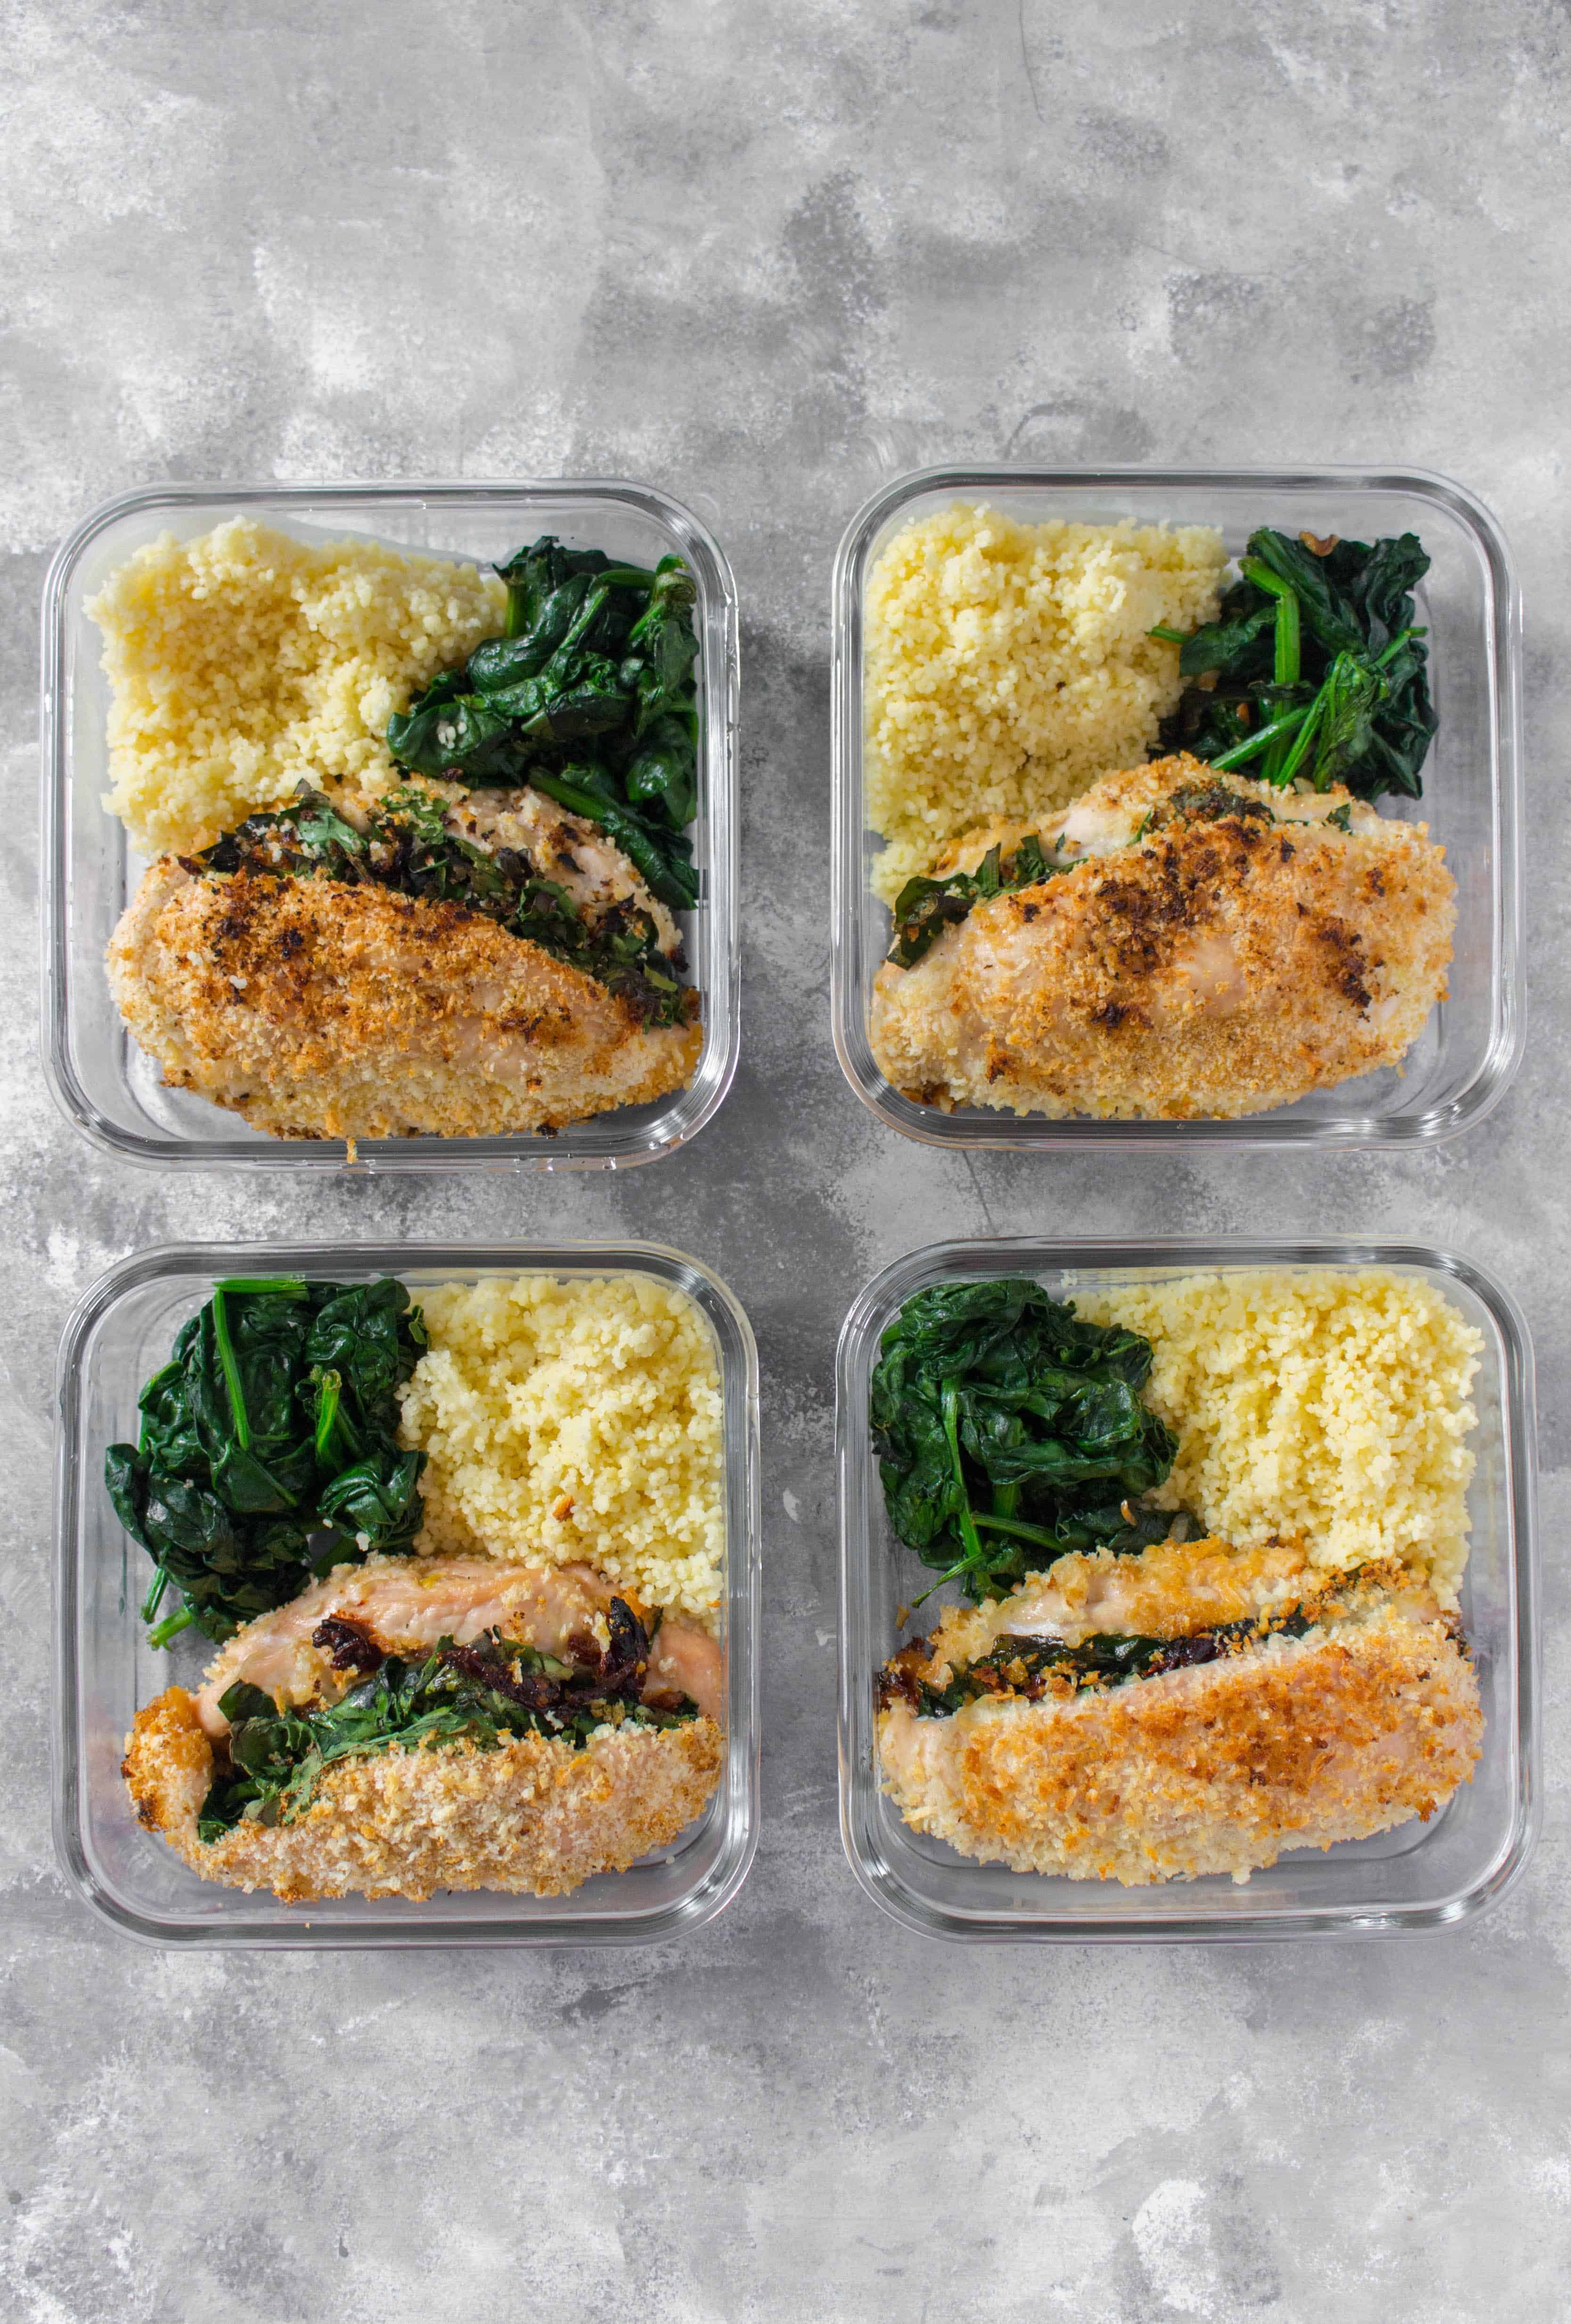 Looking to change up your regular boring chicken meal prep? This Spinach, Sun Dried Tomato, and Cheese Stuffed Chicken Meal Prep will have you asking for more as it is stuffed with flavour without having to spend time marinating!